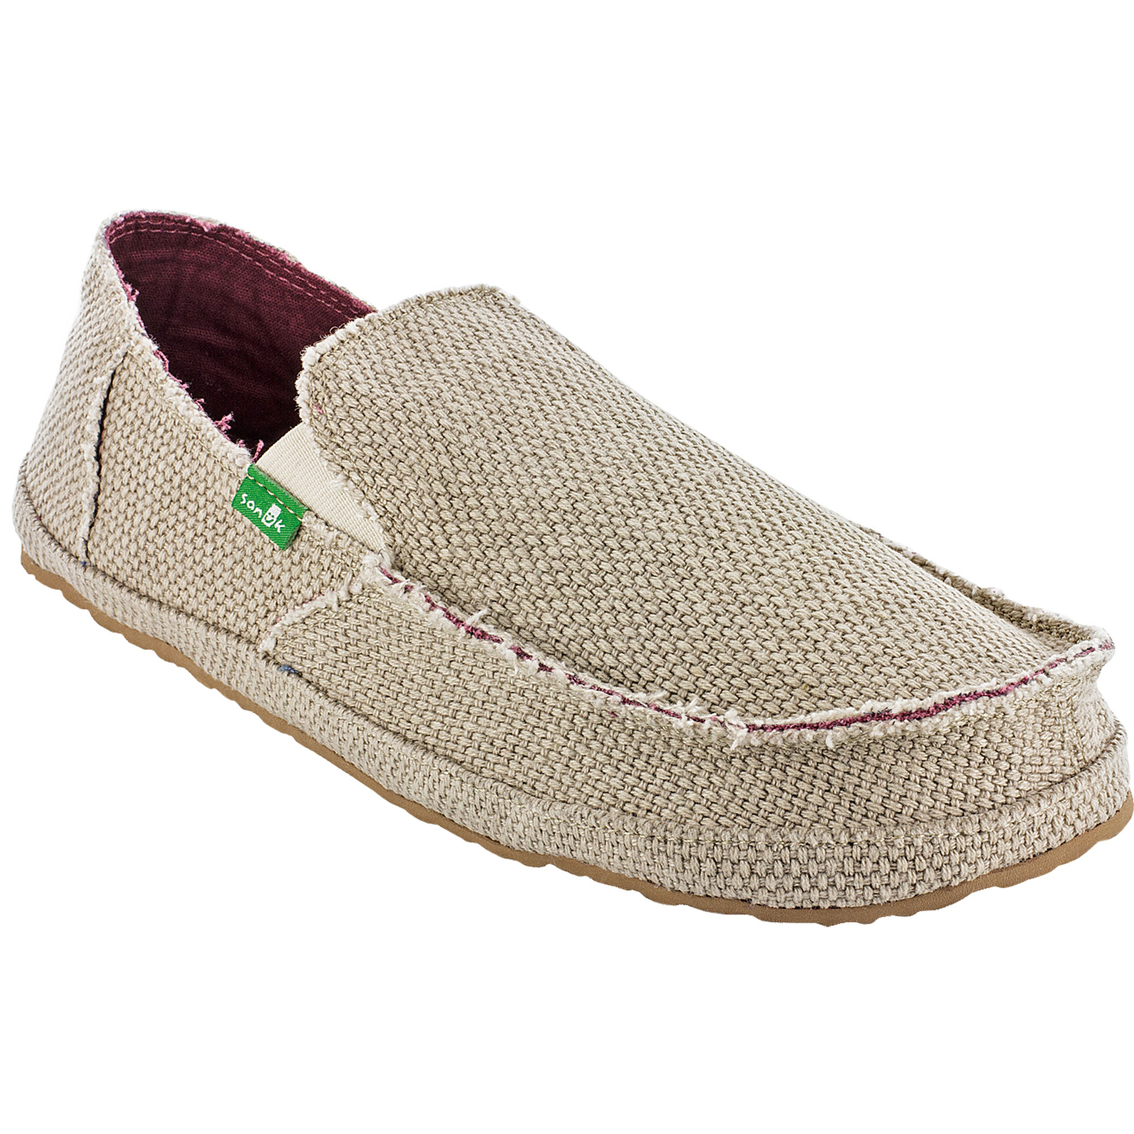 Rounder Slip On Shoes   Casuals   Shoes